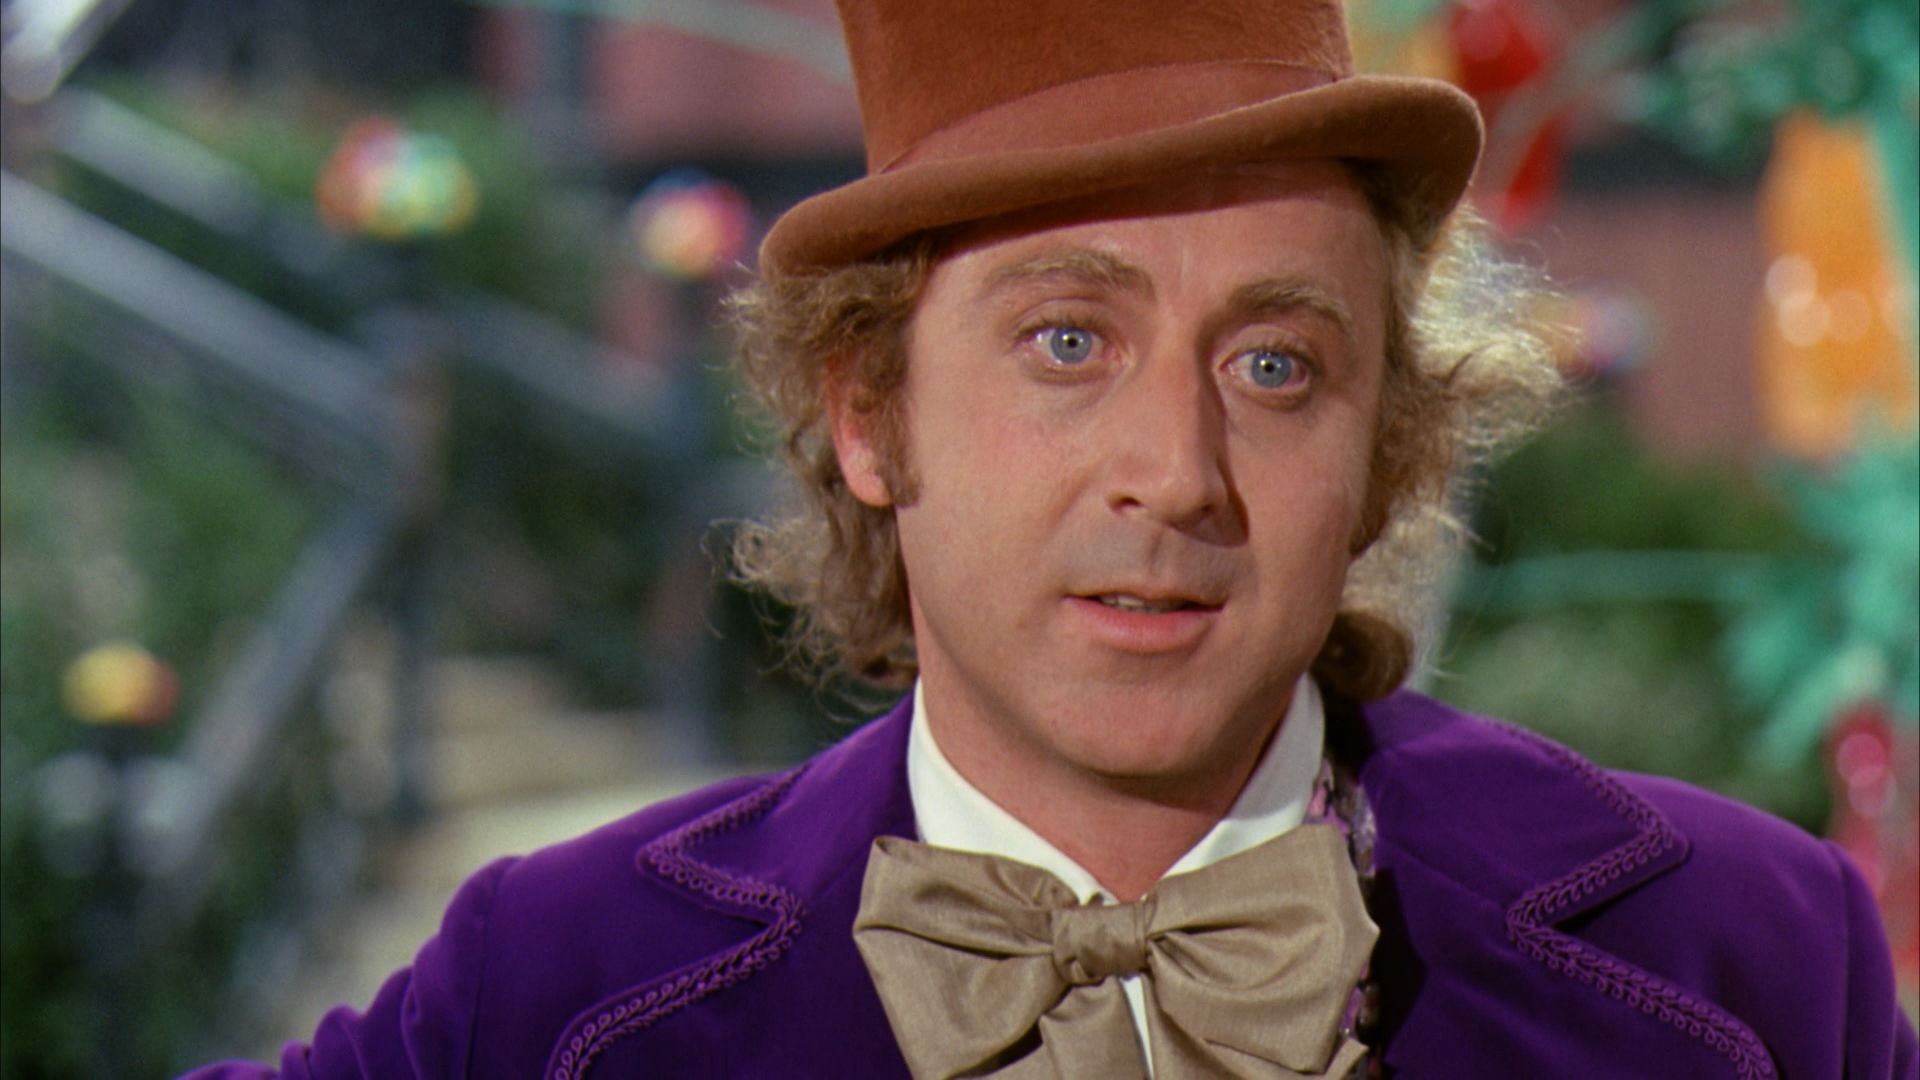 Comic Icon And Willy Wonka Star Gene Wilder Dies At 83